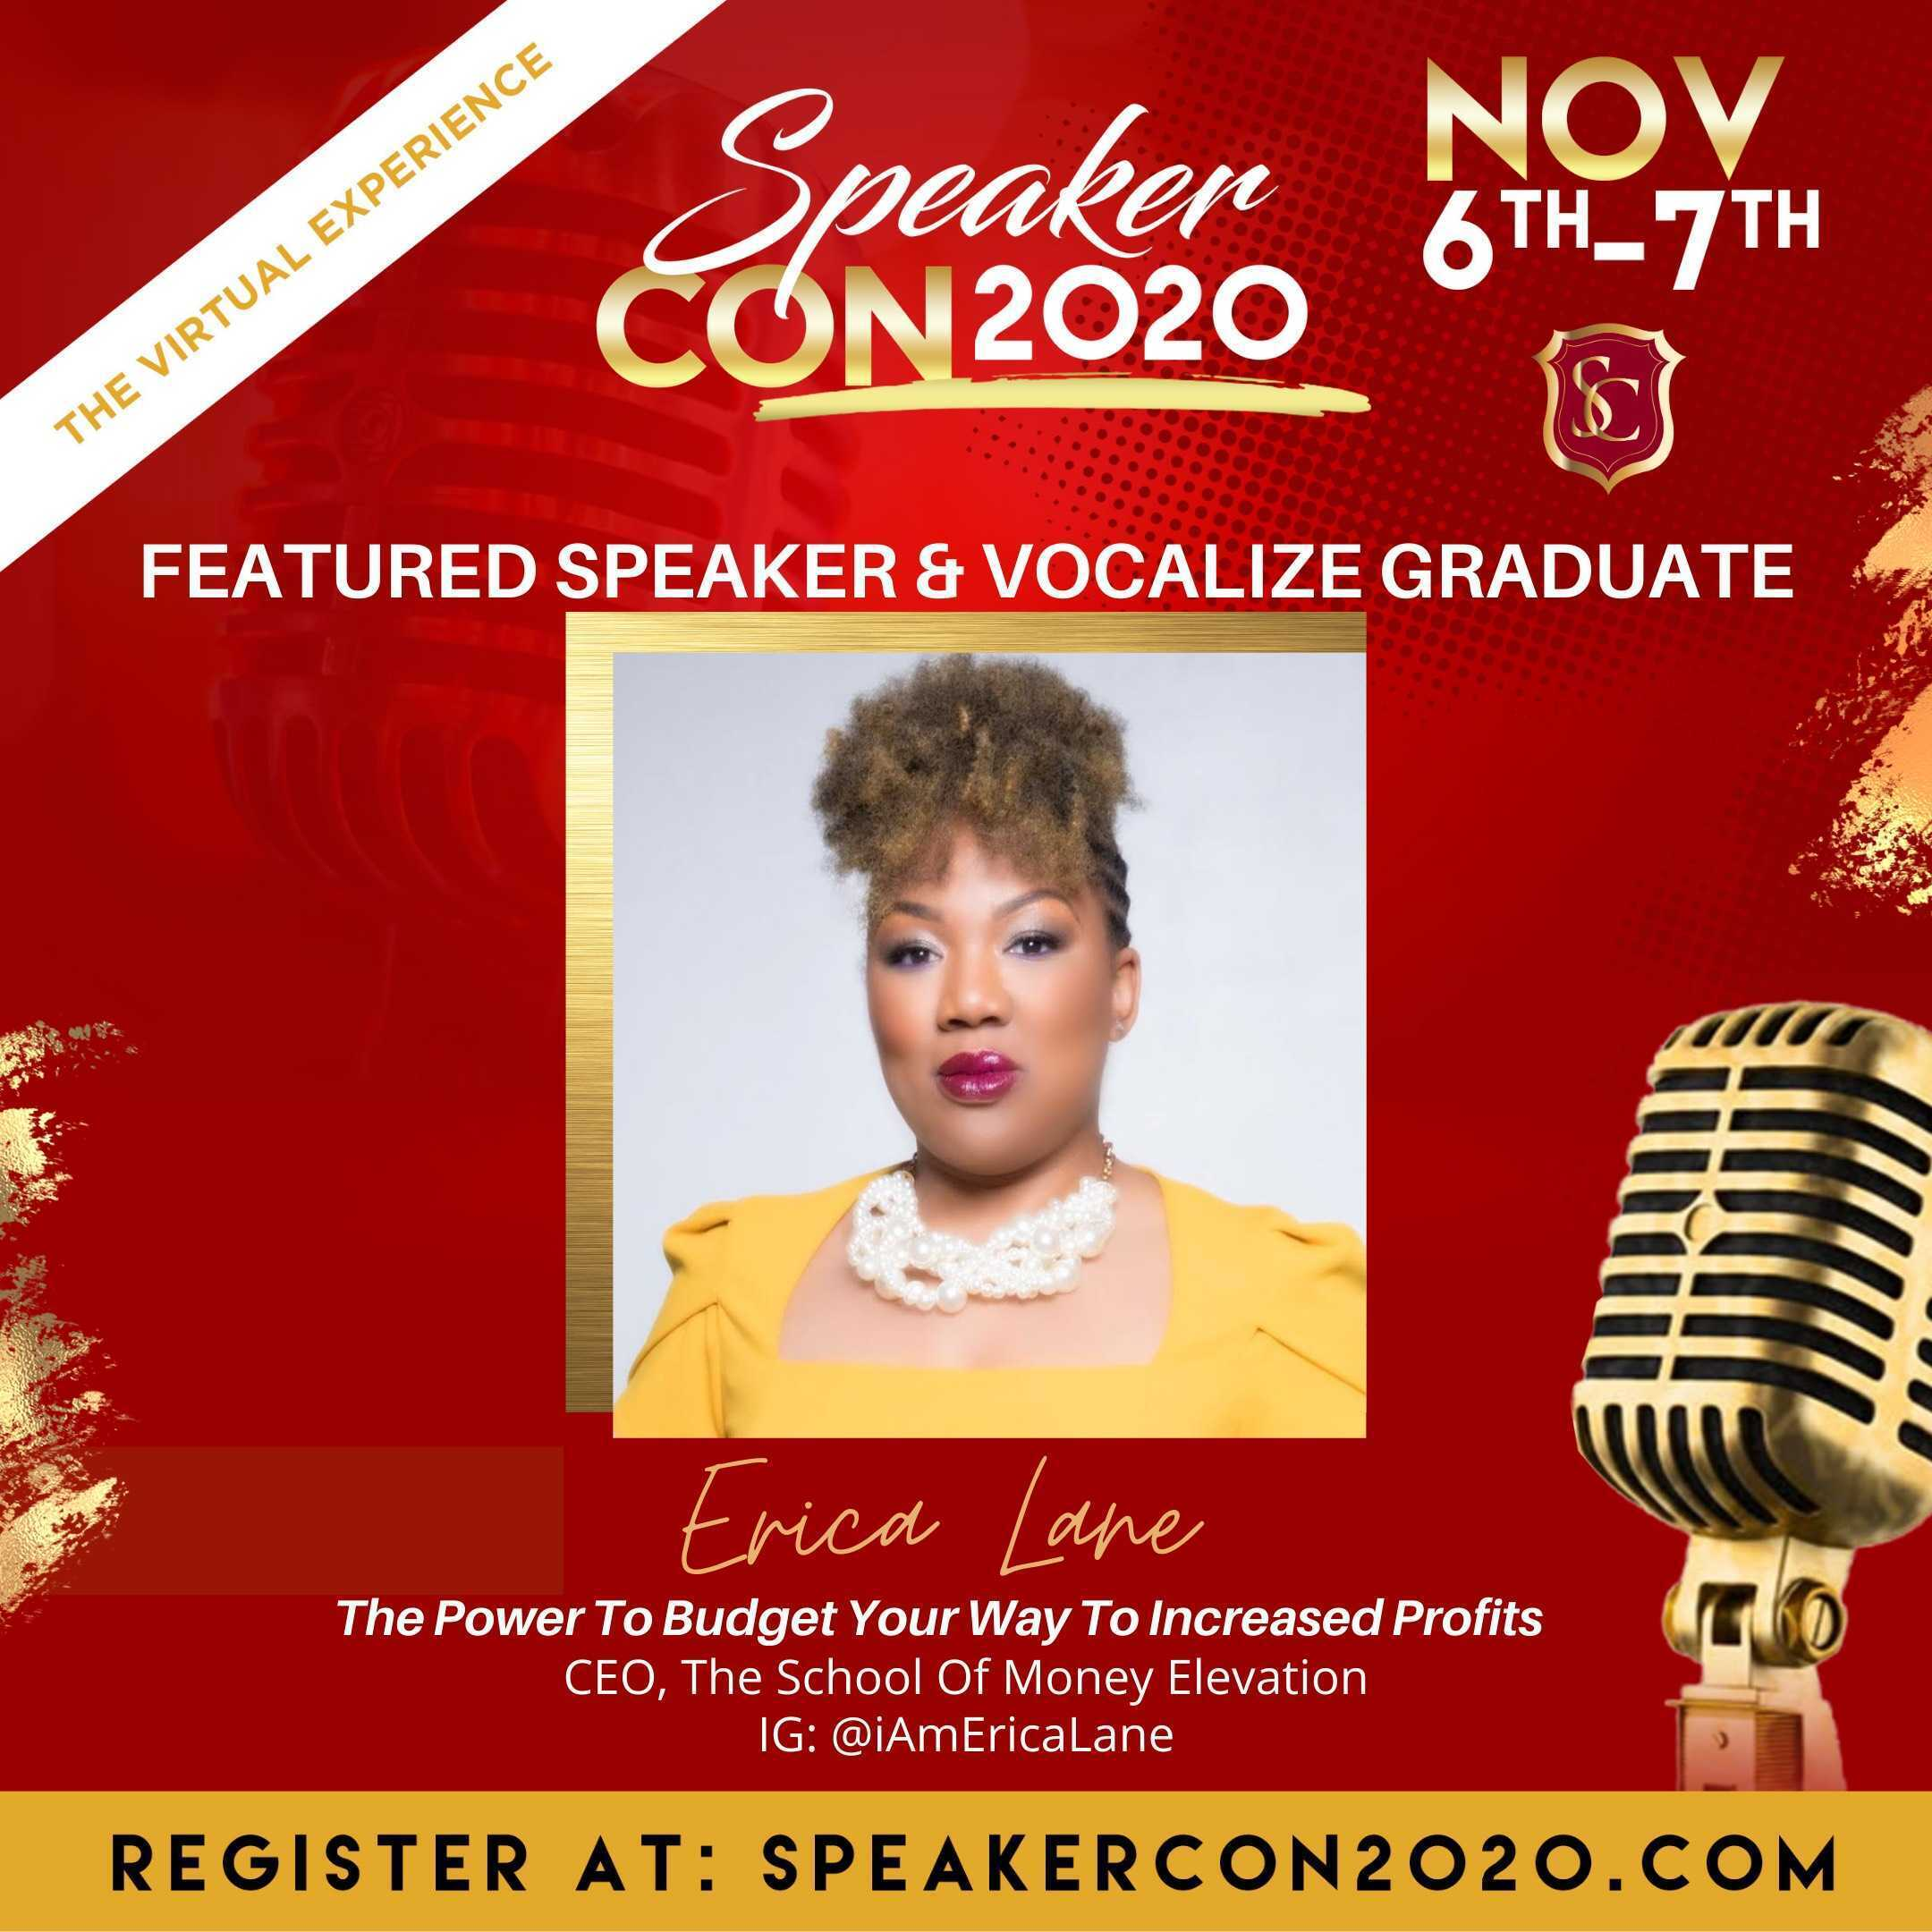 """Join Erica Lane As She Partners with Speakercon To Speak On """"The Power To Budget Your Way To Increased Profit"""""""